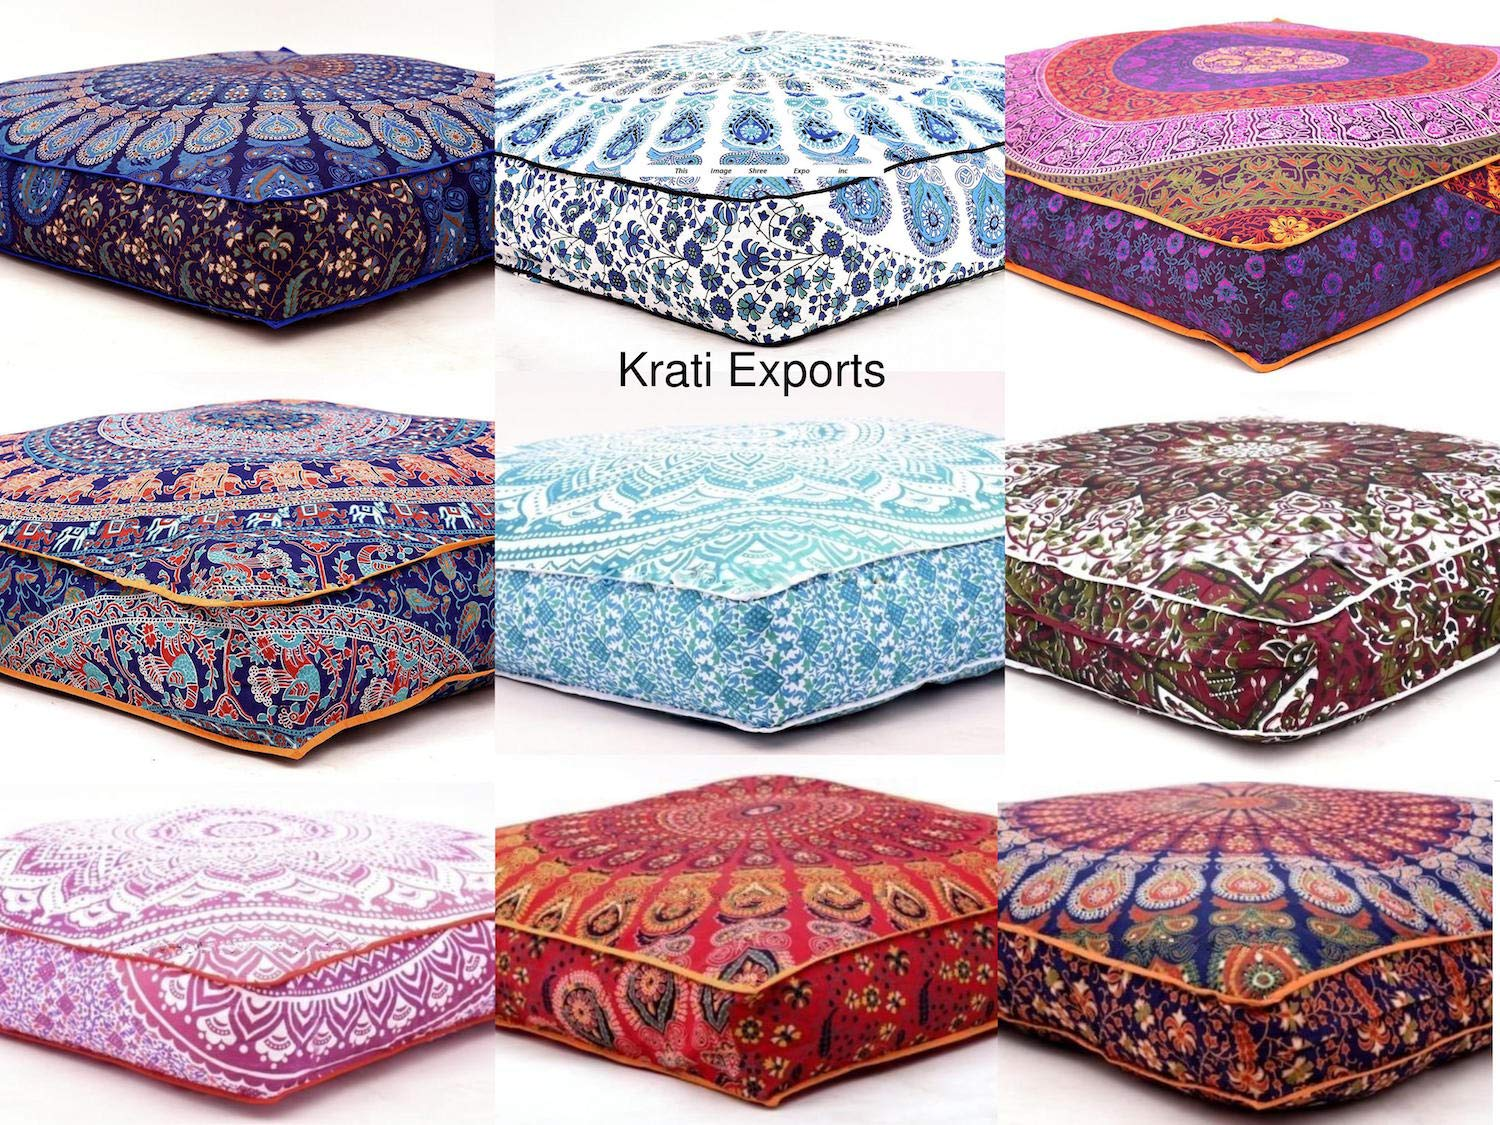 5 Pcs Large Mandala Floor Pillows Wholesale Lot Square Indian Cushion Cover 35